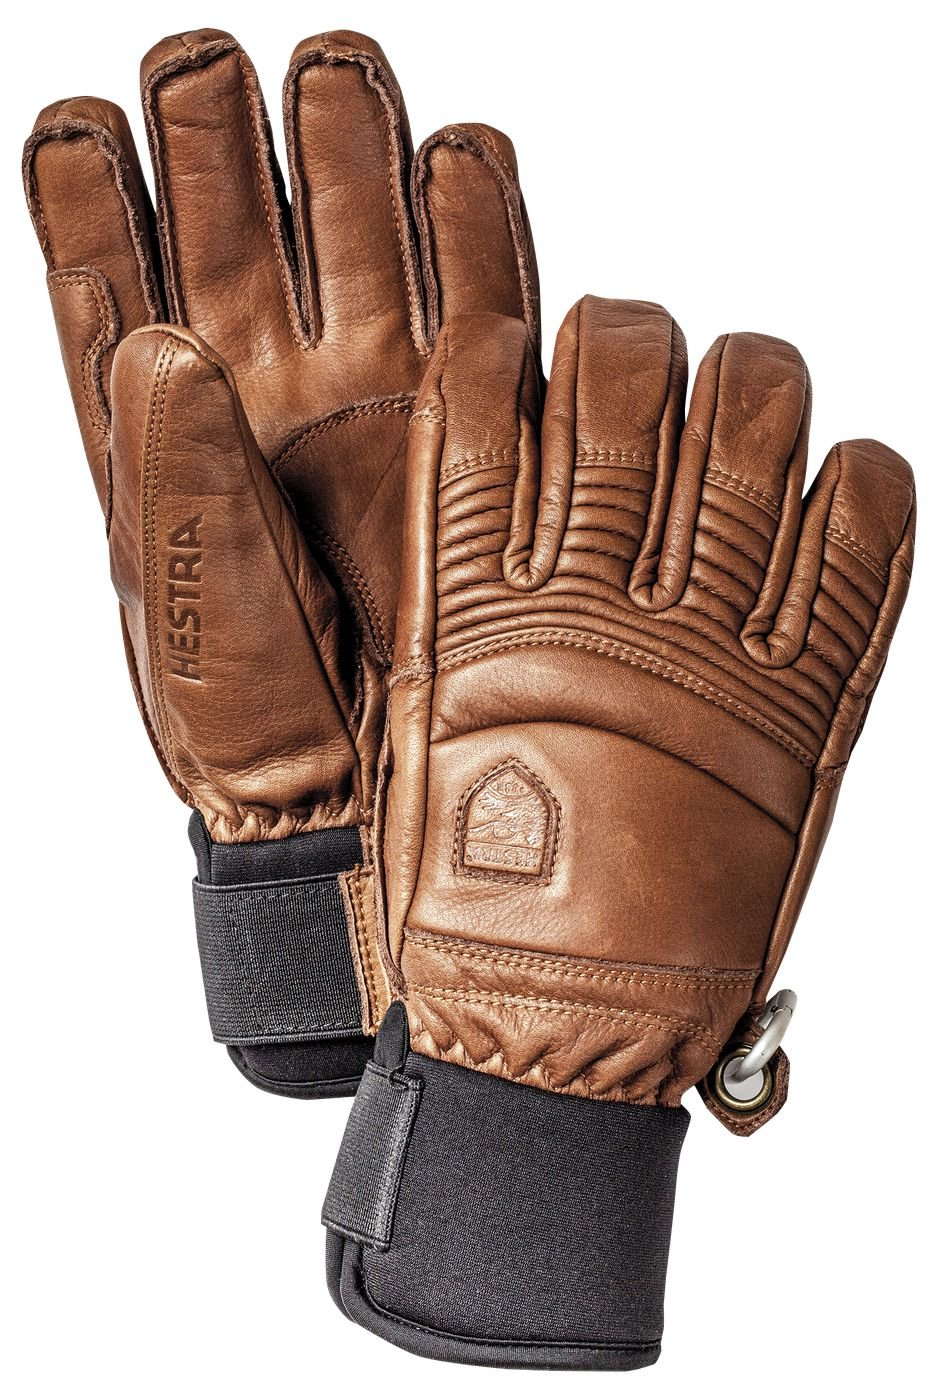 Hestra Mens Ski Gloves: Fall Line Winter Cold Weather Leather Gloves, Brown, 9 by Hestra